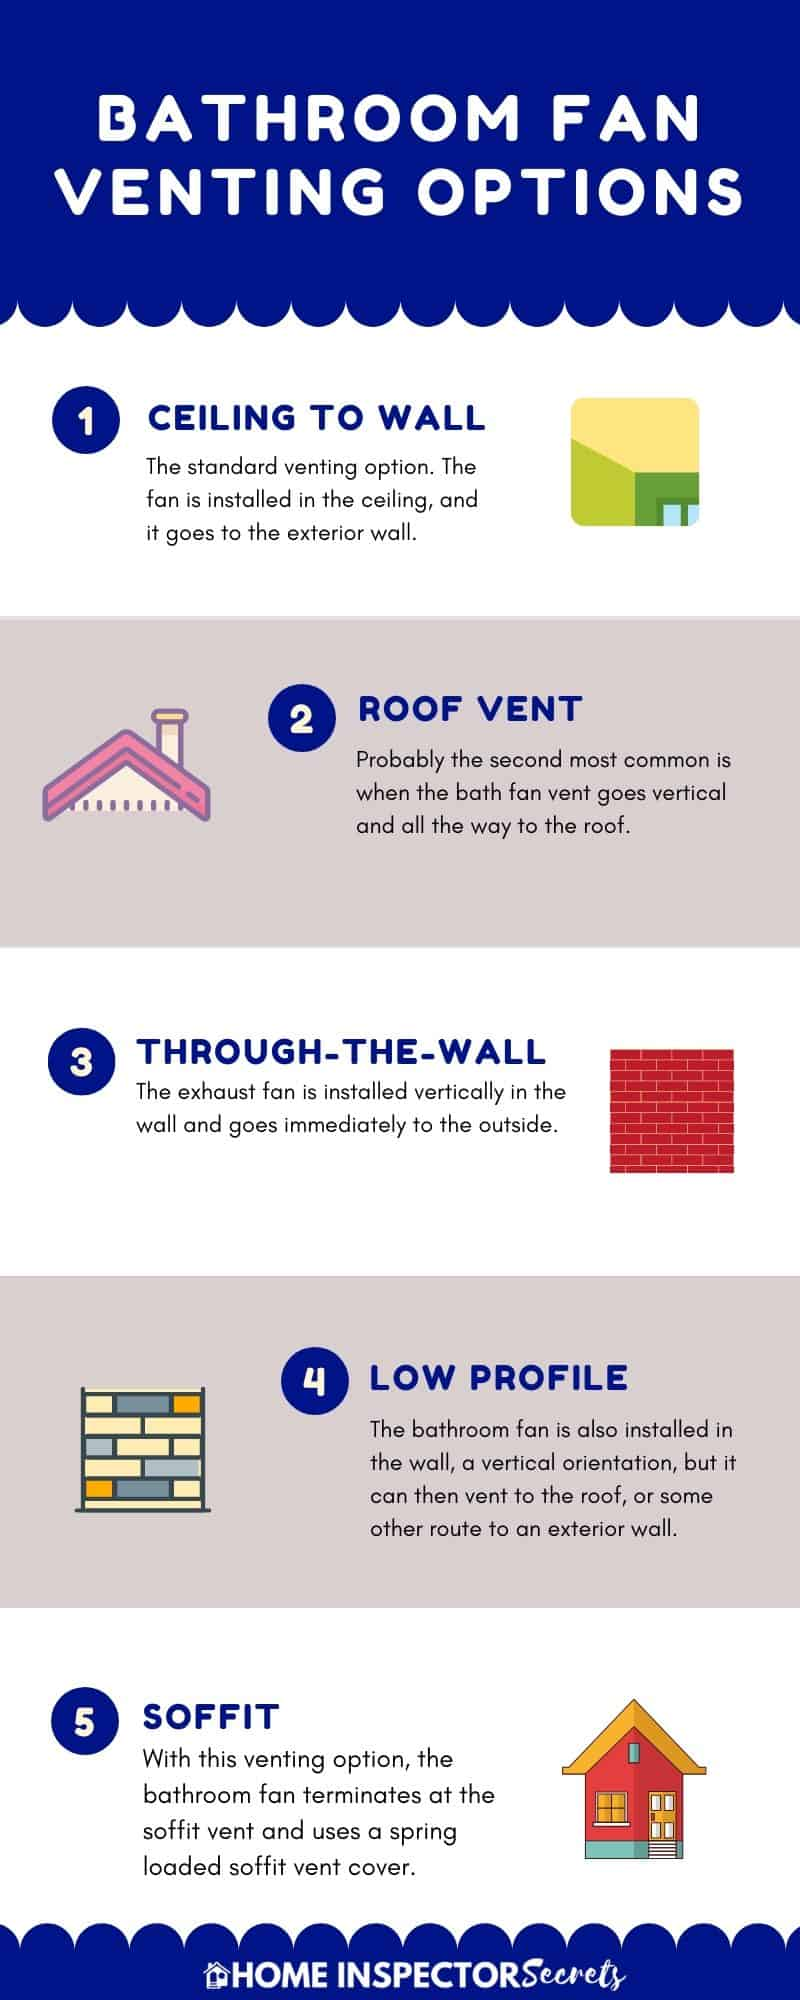 Bathroom Exhaust Fan Venting Options Top 5 Choices Home Inspector Secrets